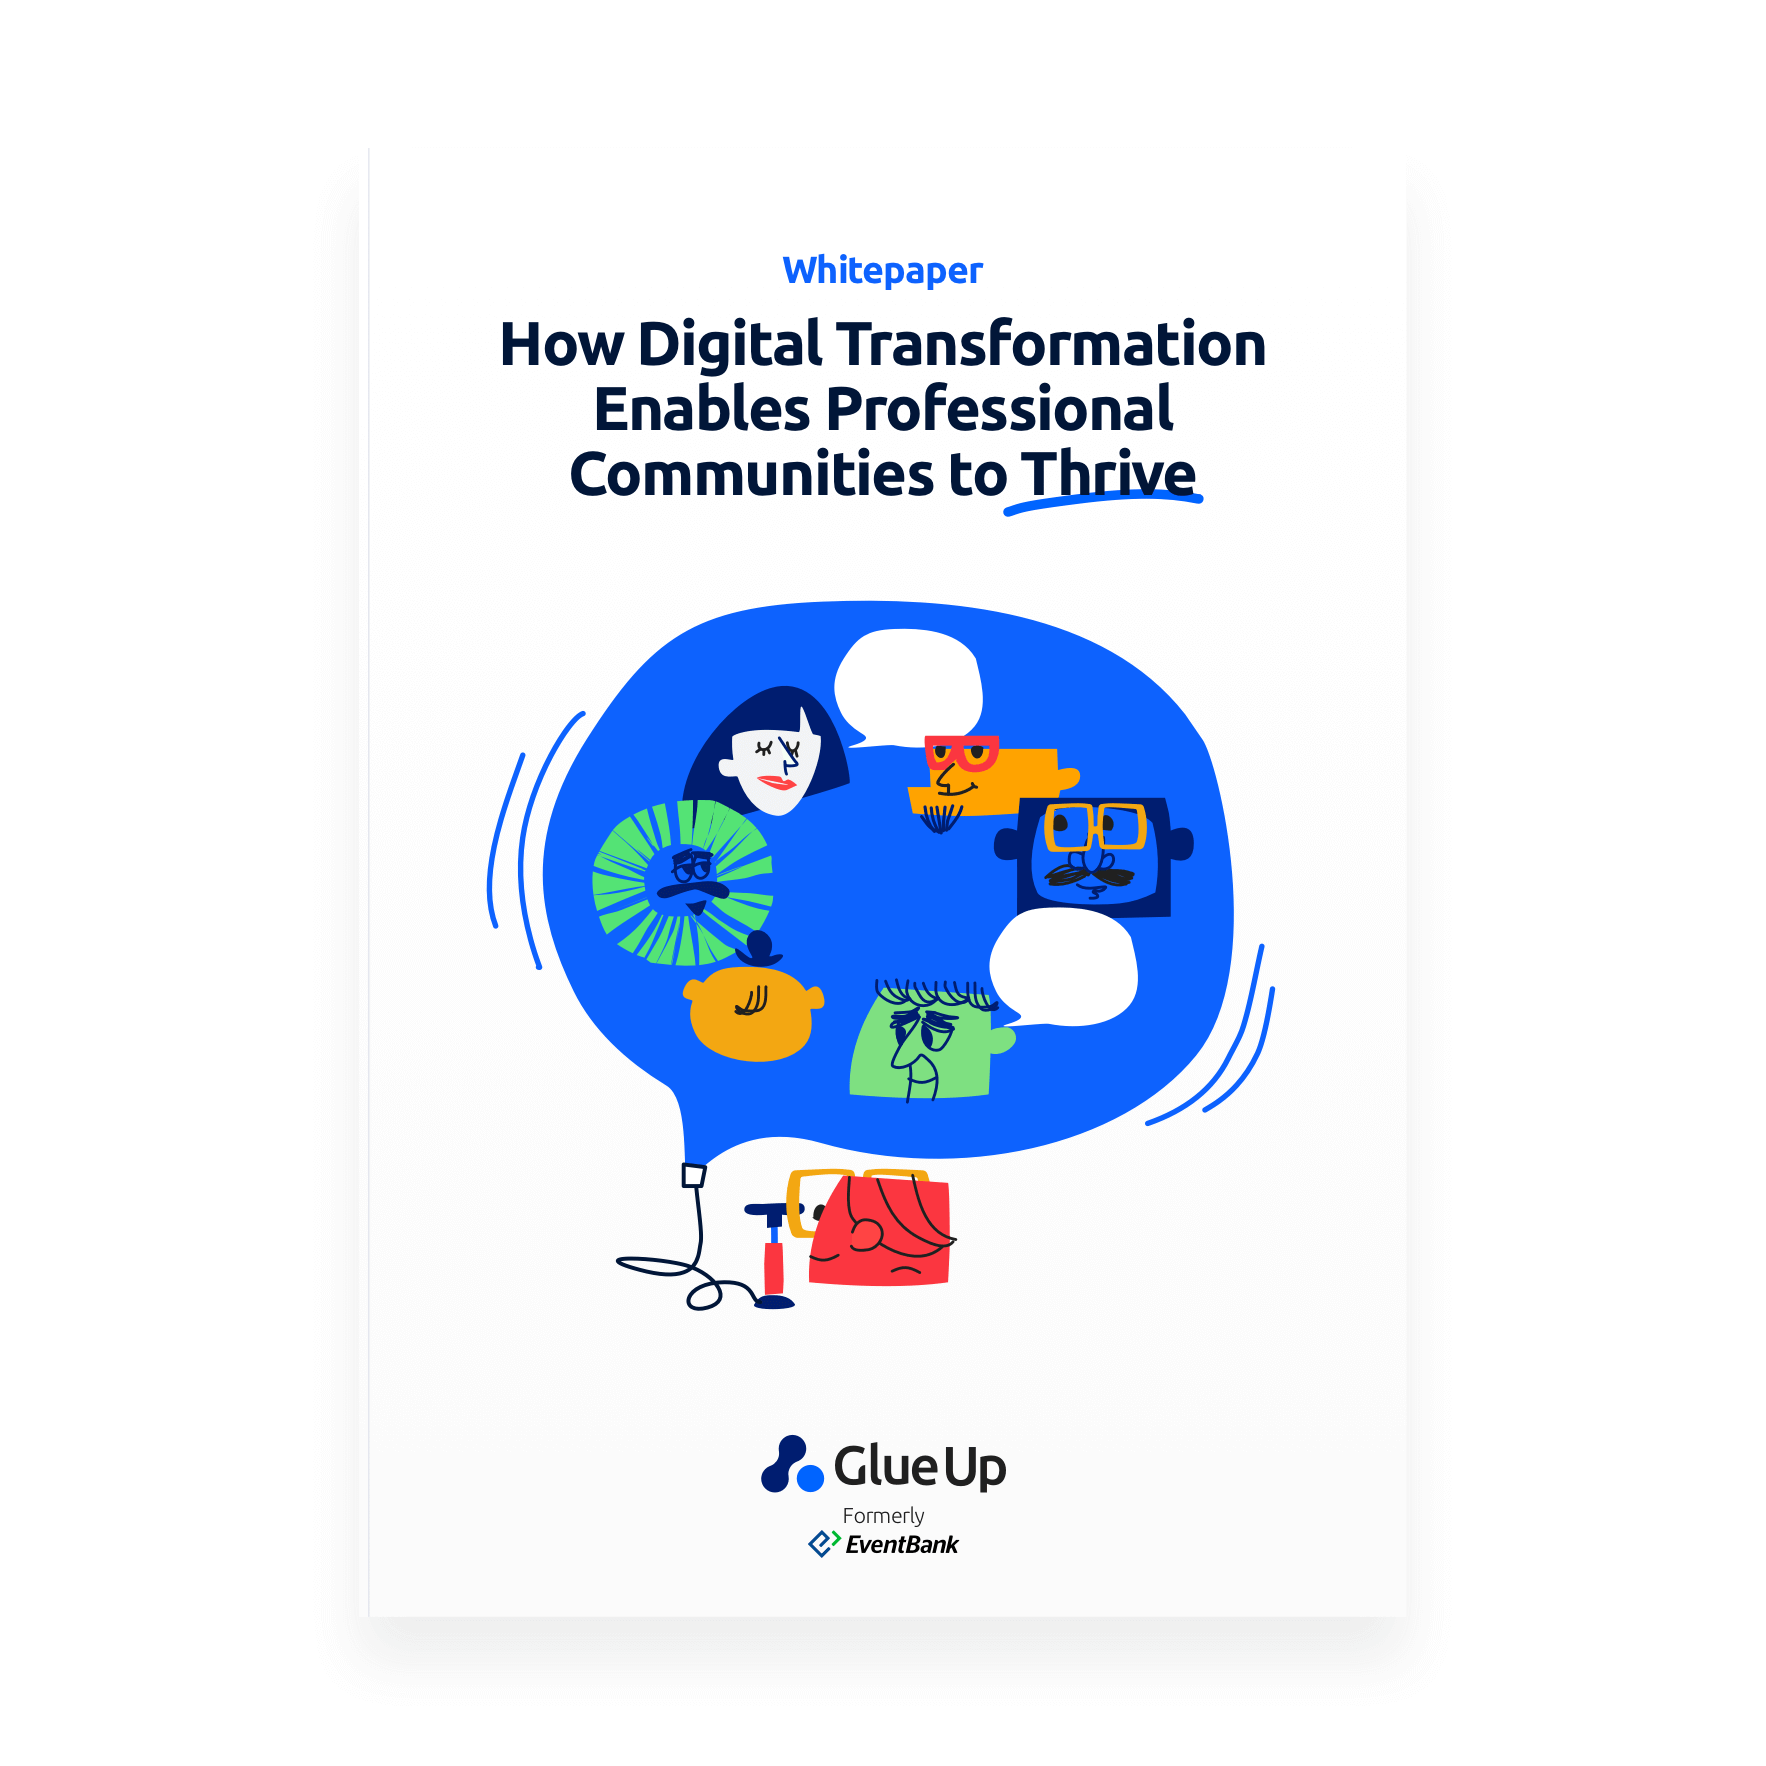 How Digital Transformation Enables Professional Communities to Thrive